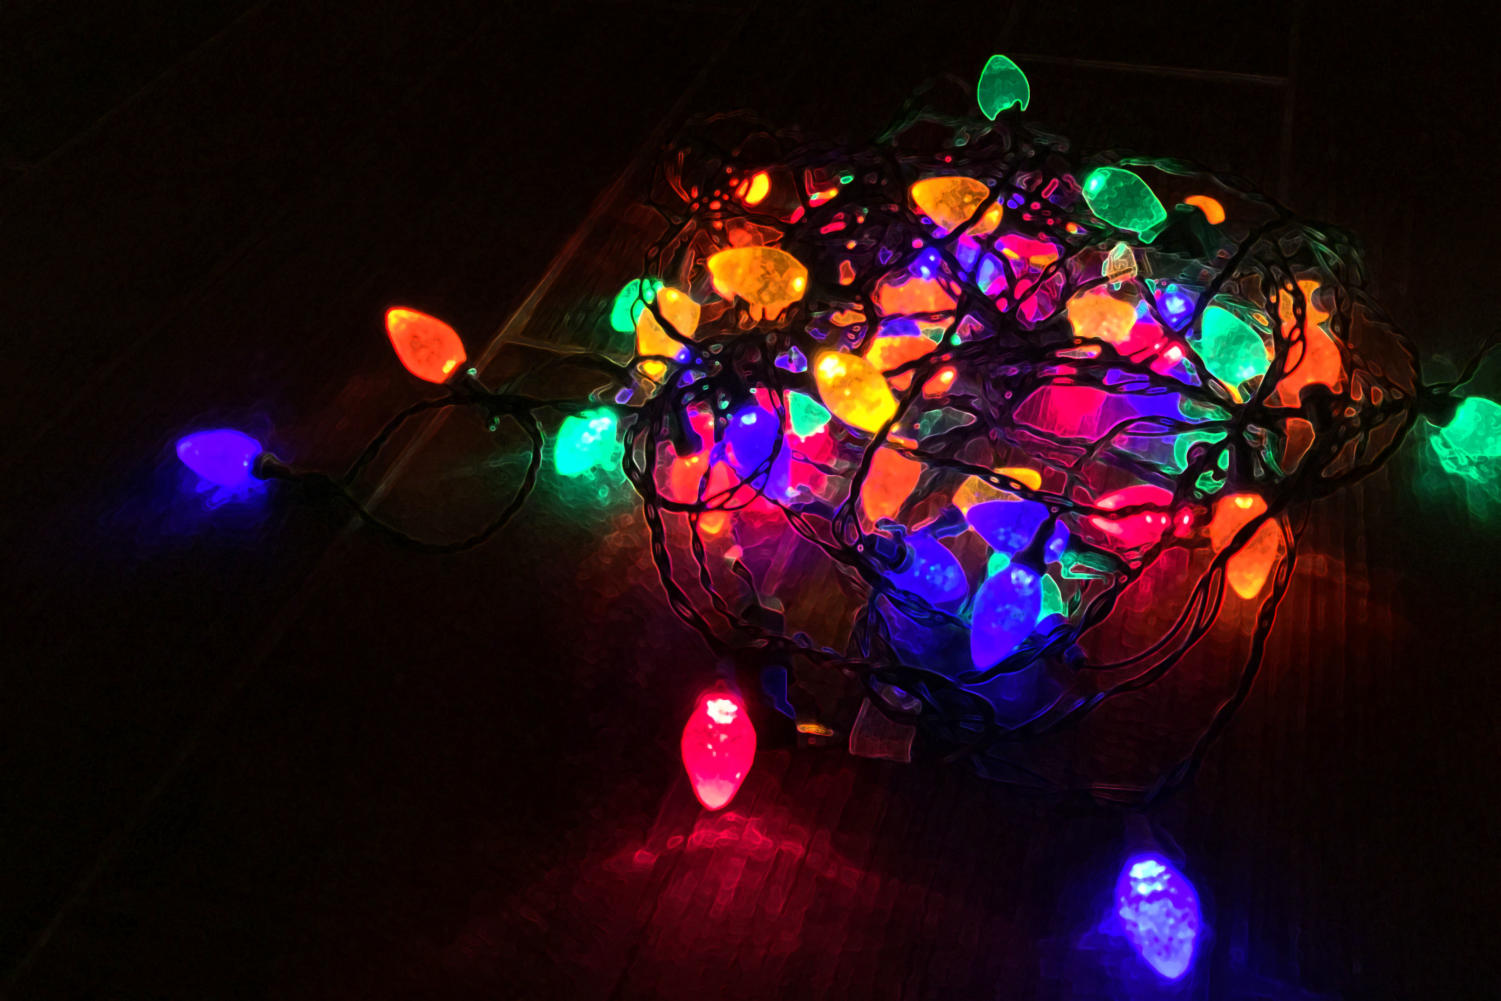 christmas lights reminiscent of stranger things season - Stranger Things Christmas Decorations